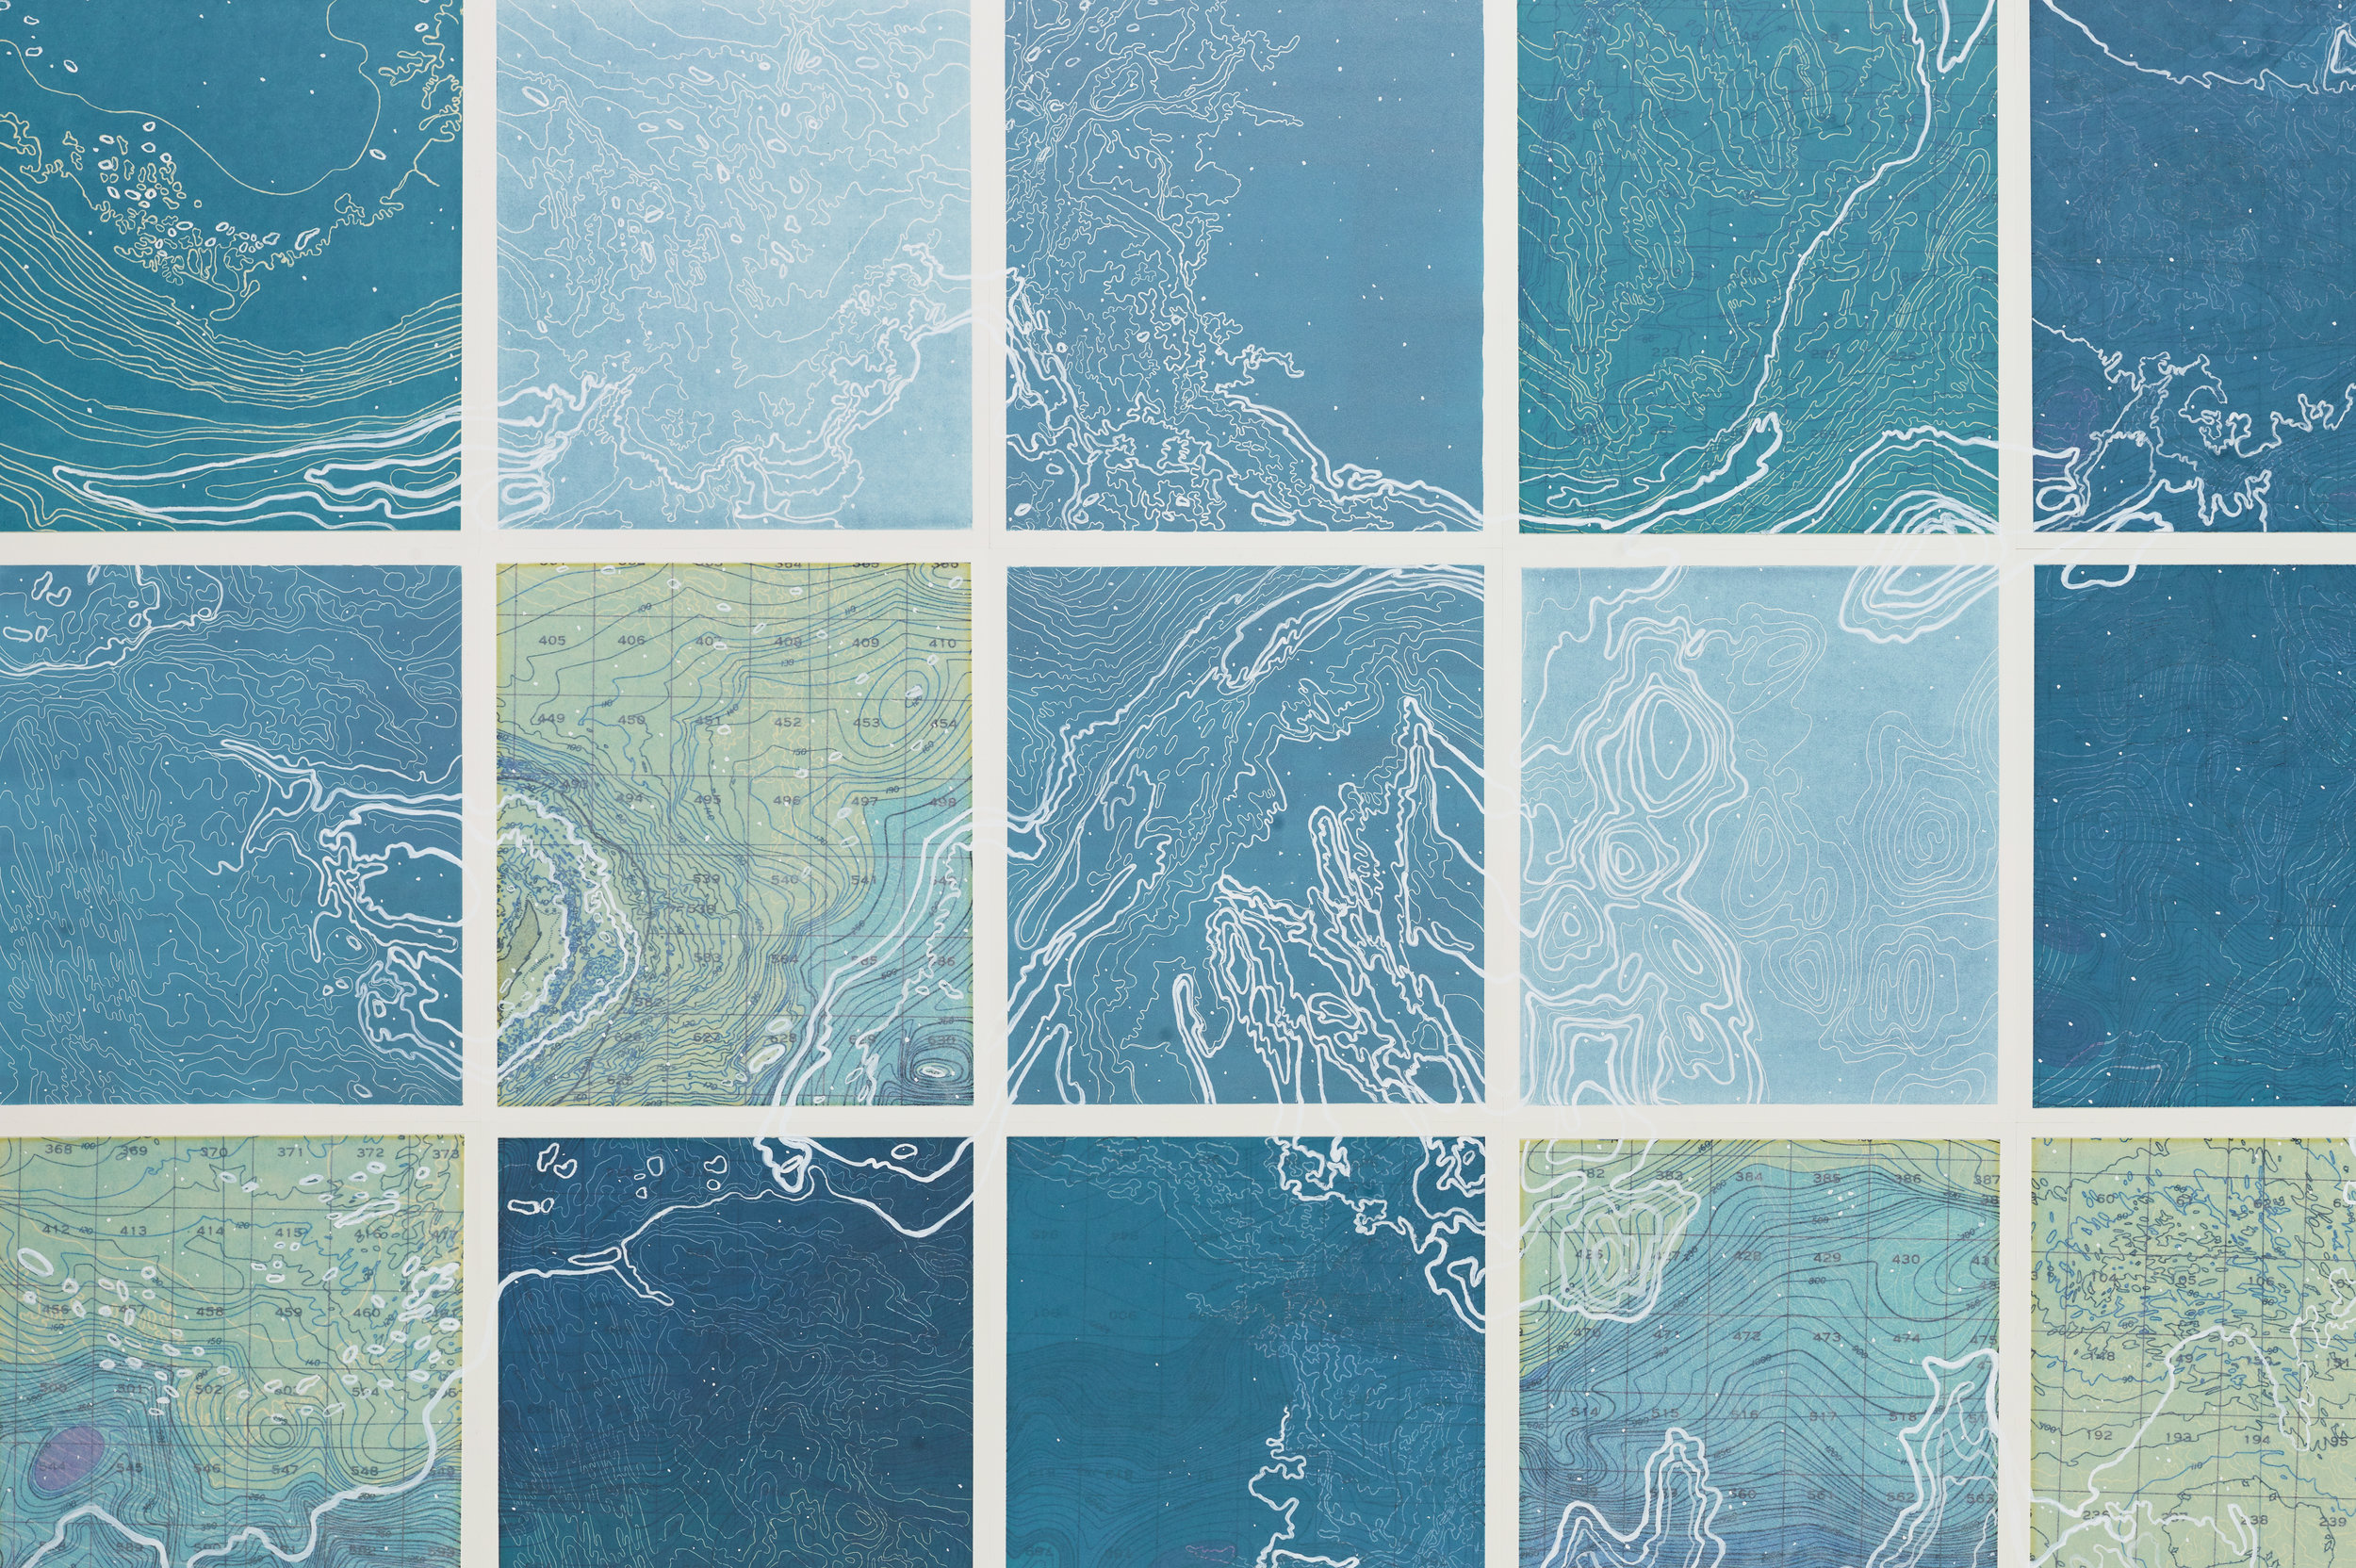 Hyperborean Sea,2 017  Detail - line etching, relief roll, ghost print, digital map on kozo-shi, paint